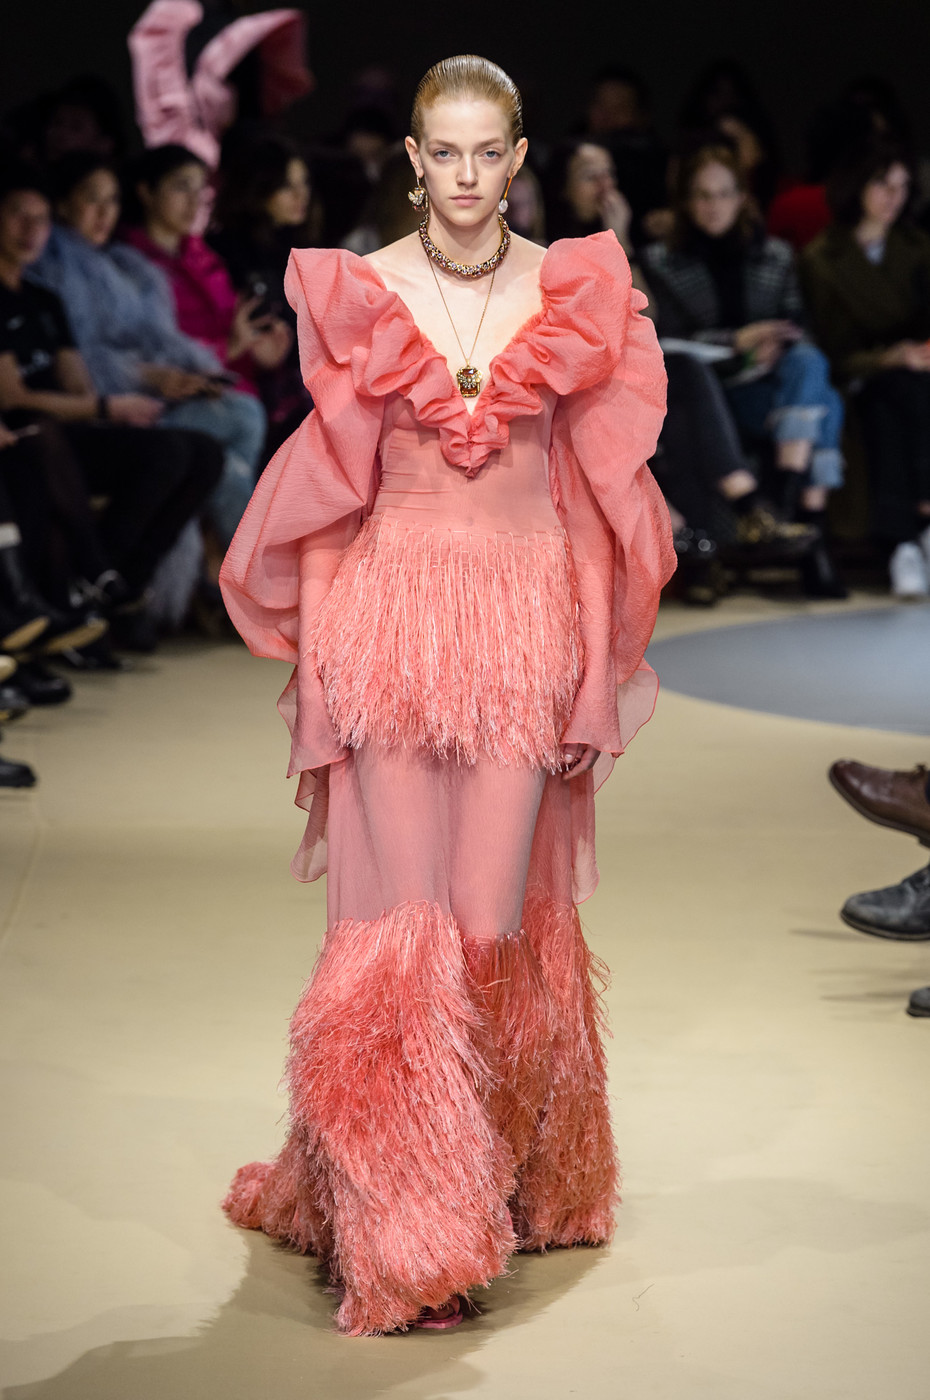 Alexander McQueen's Fall 2018 Show In Paris Was A Force Of Fashion Nature